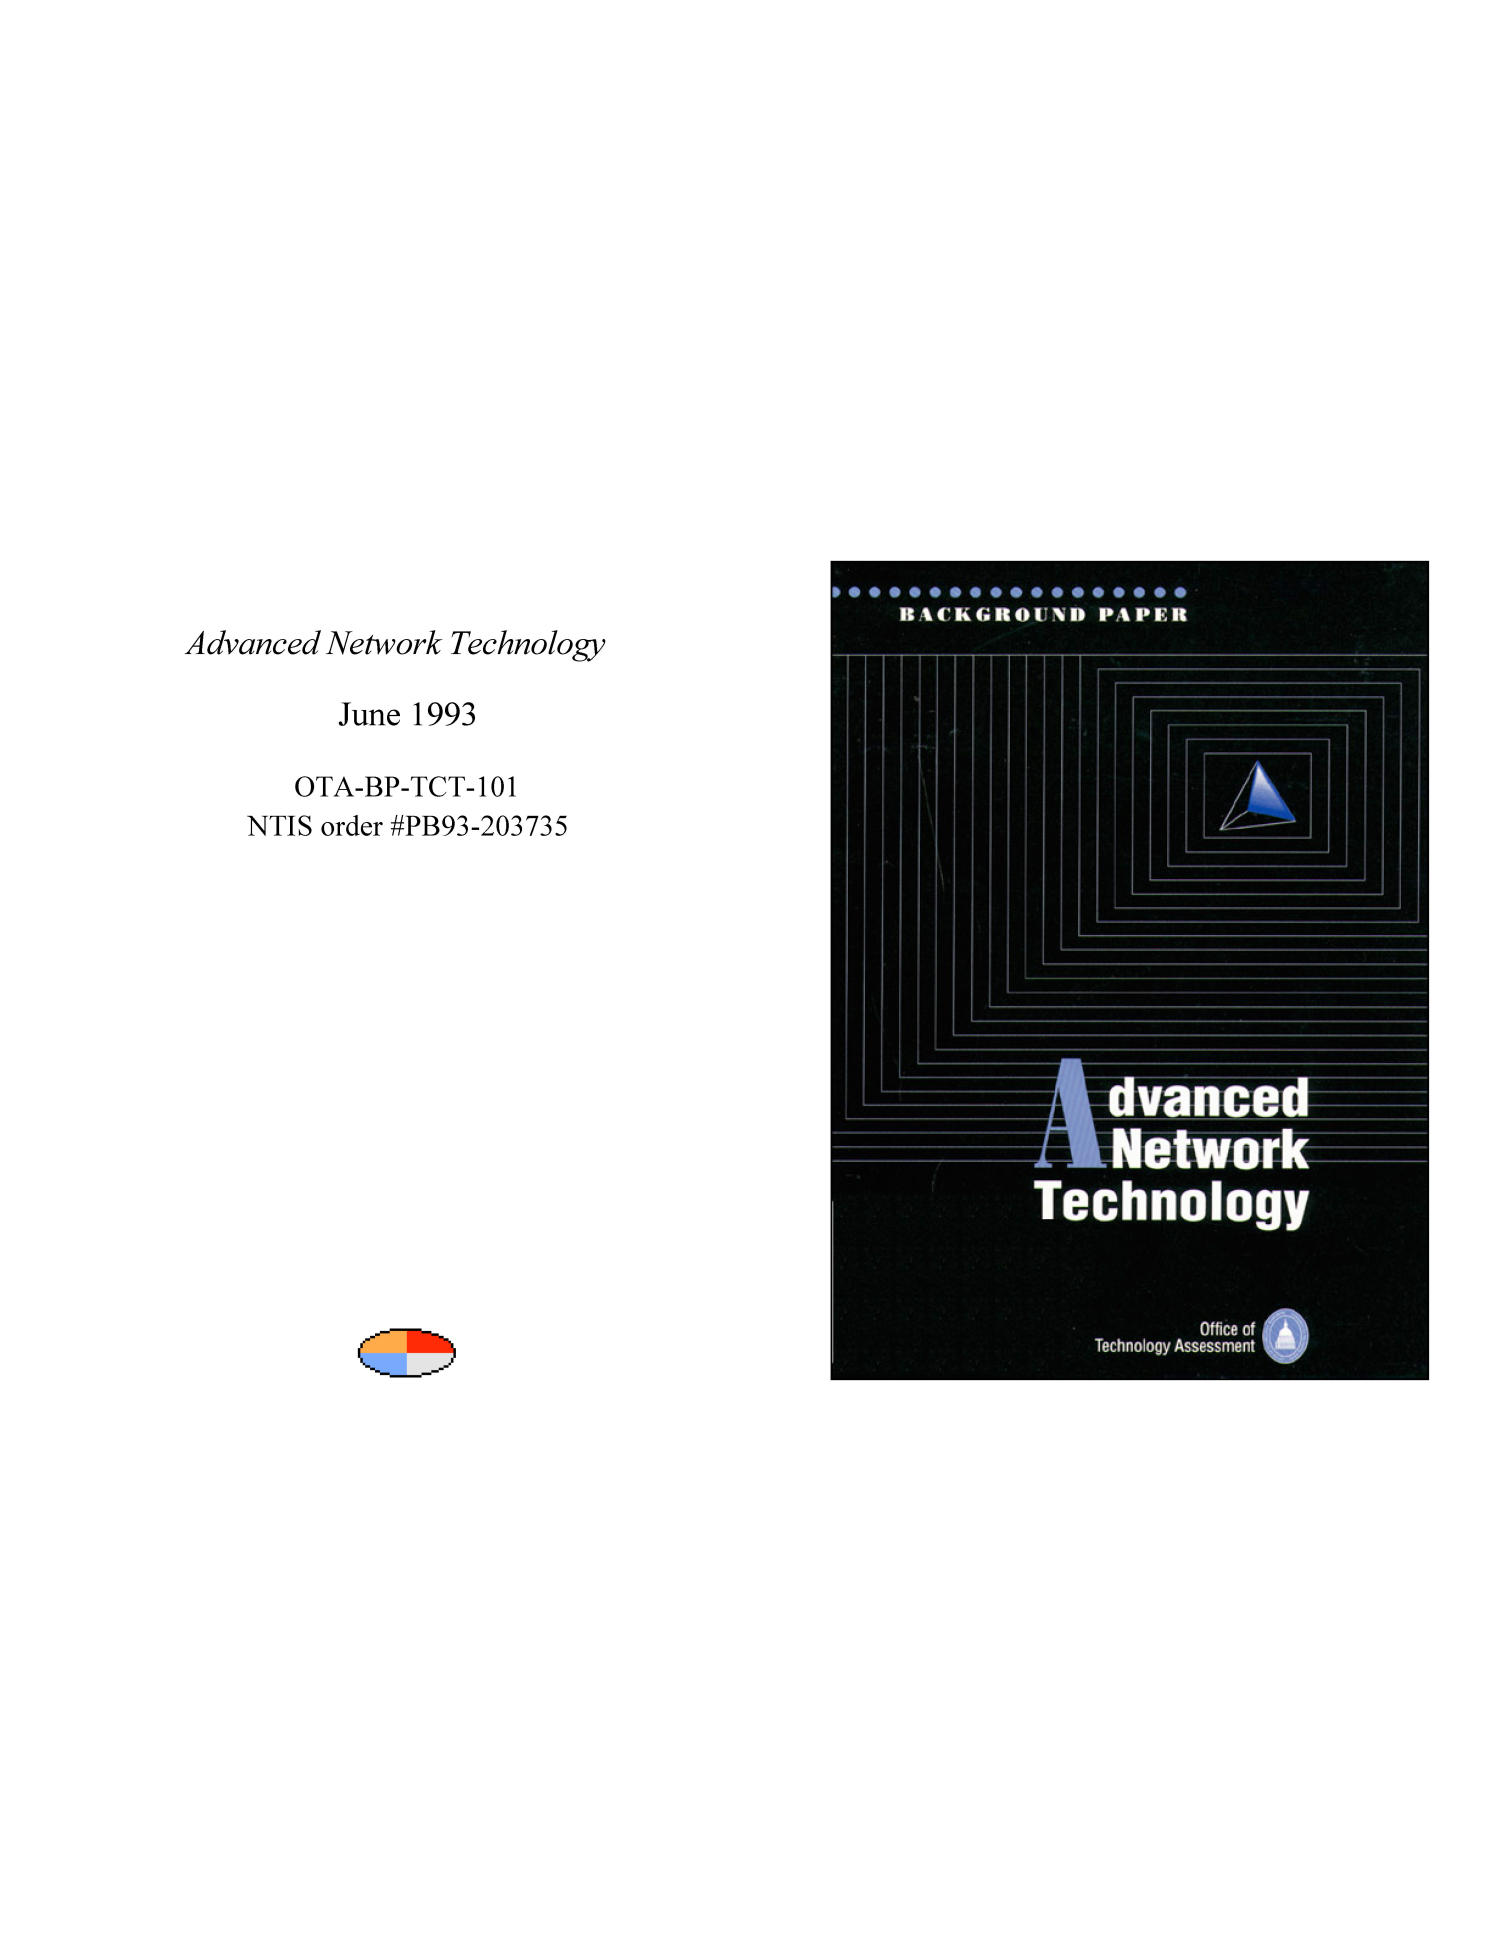 Advanced Network Technology                                                                                                      Front Cover